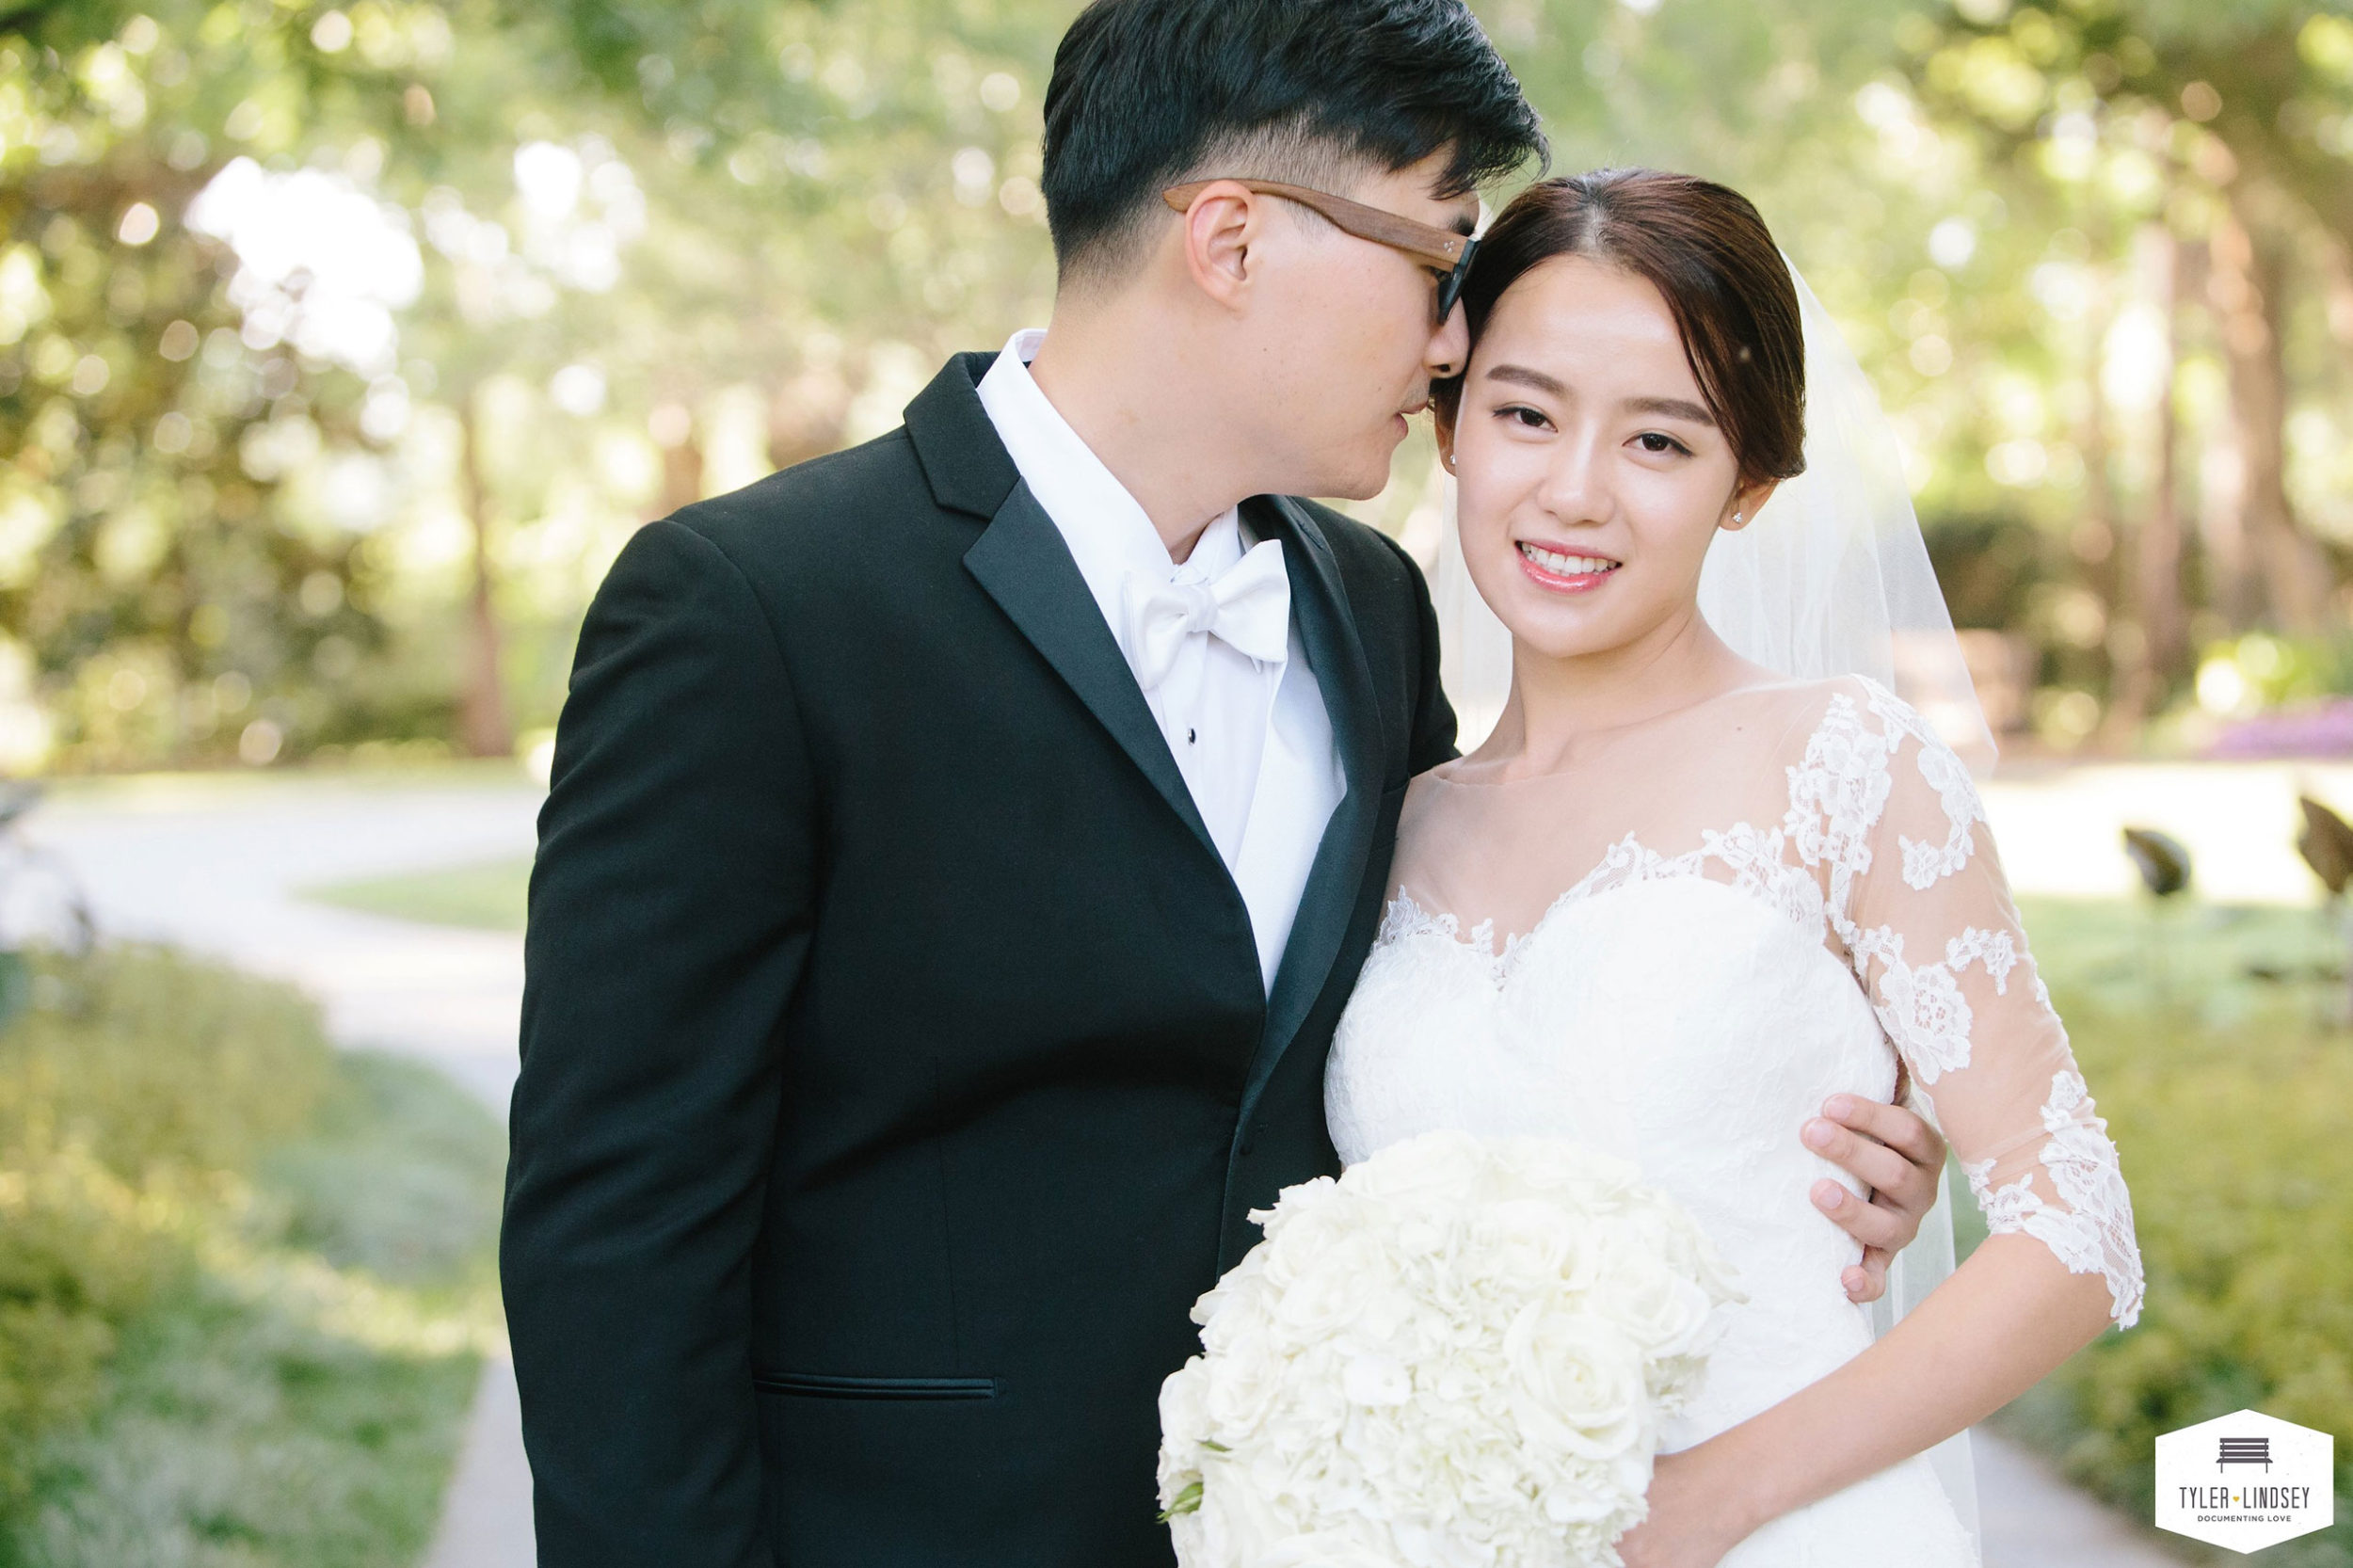 Pure Love - Chen Chen and Long Wedding Planned by Dallas Wedding Planners